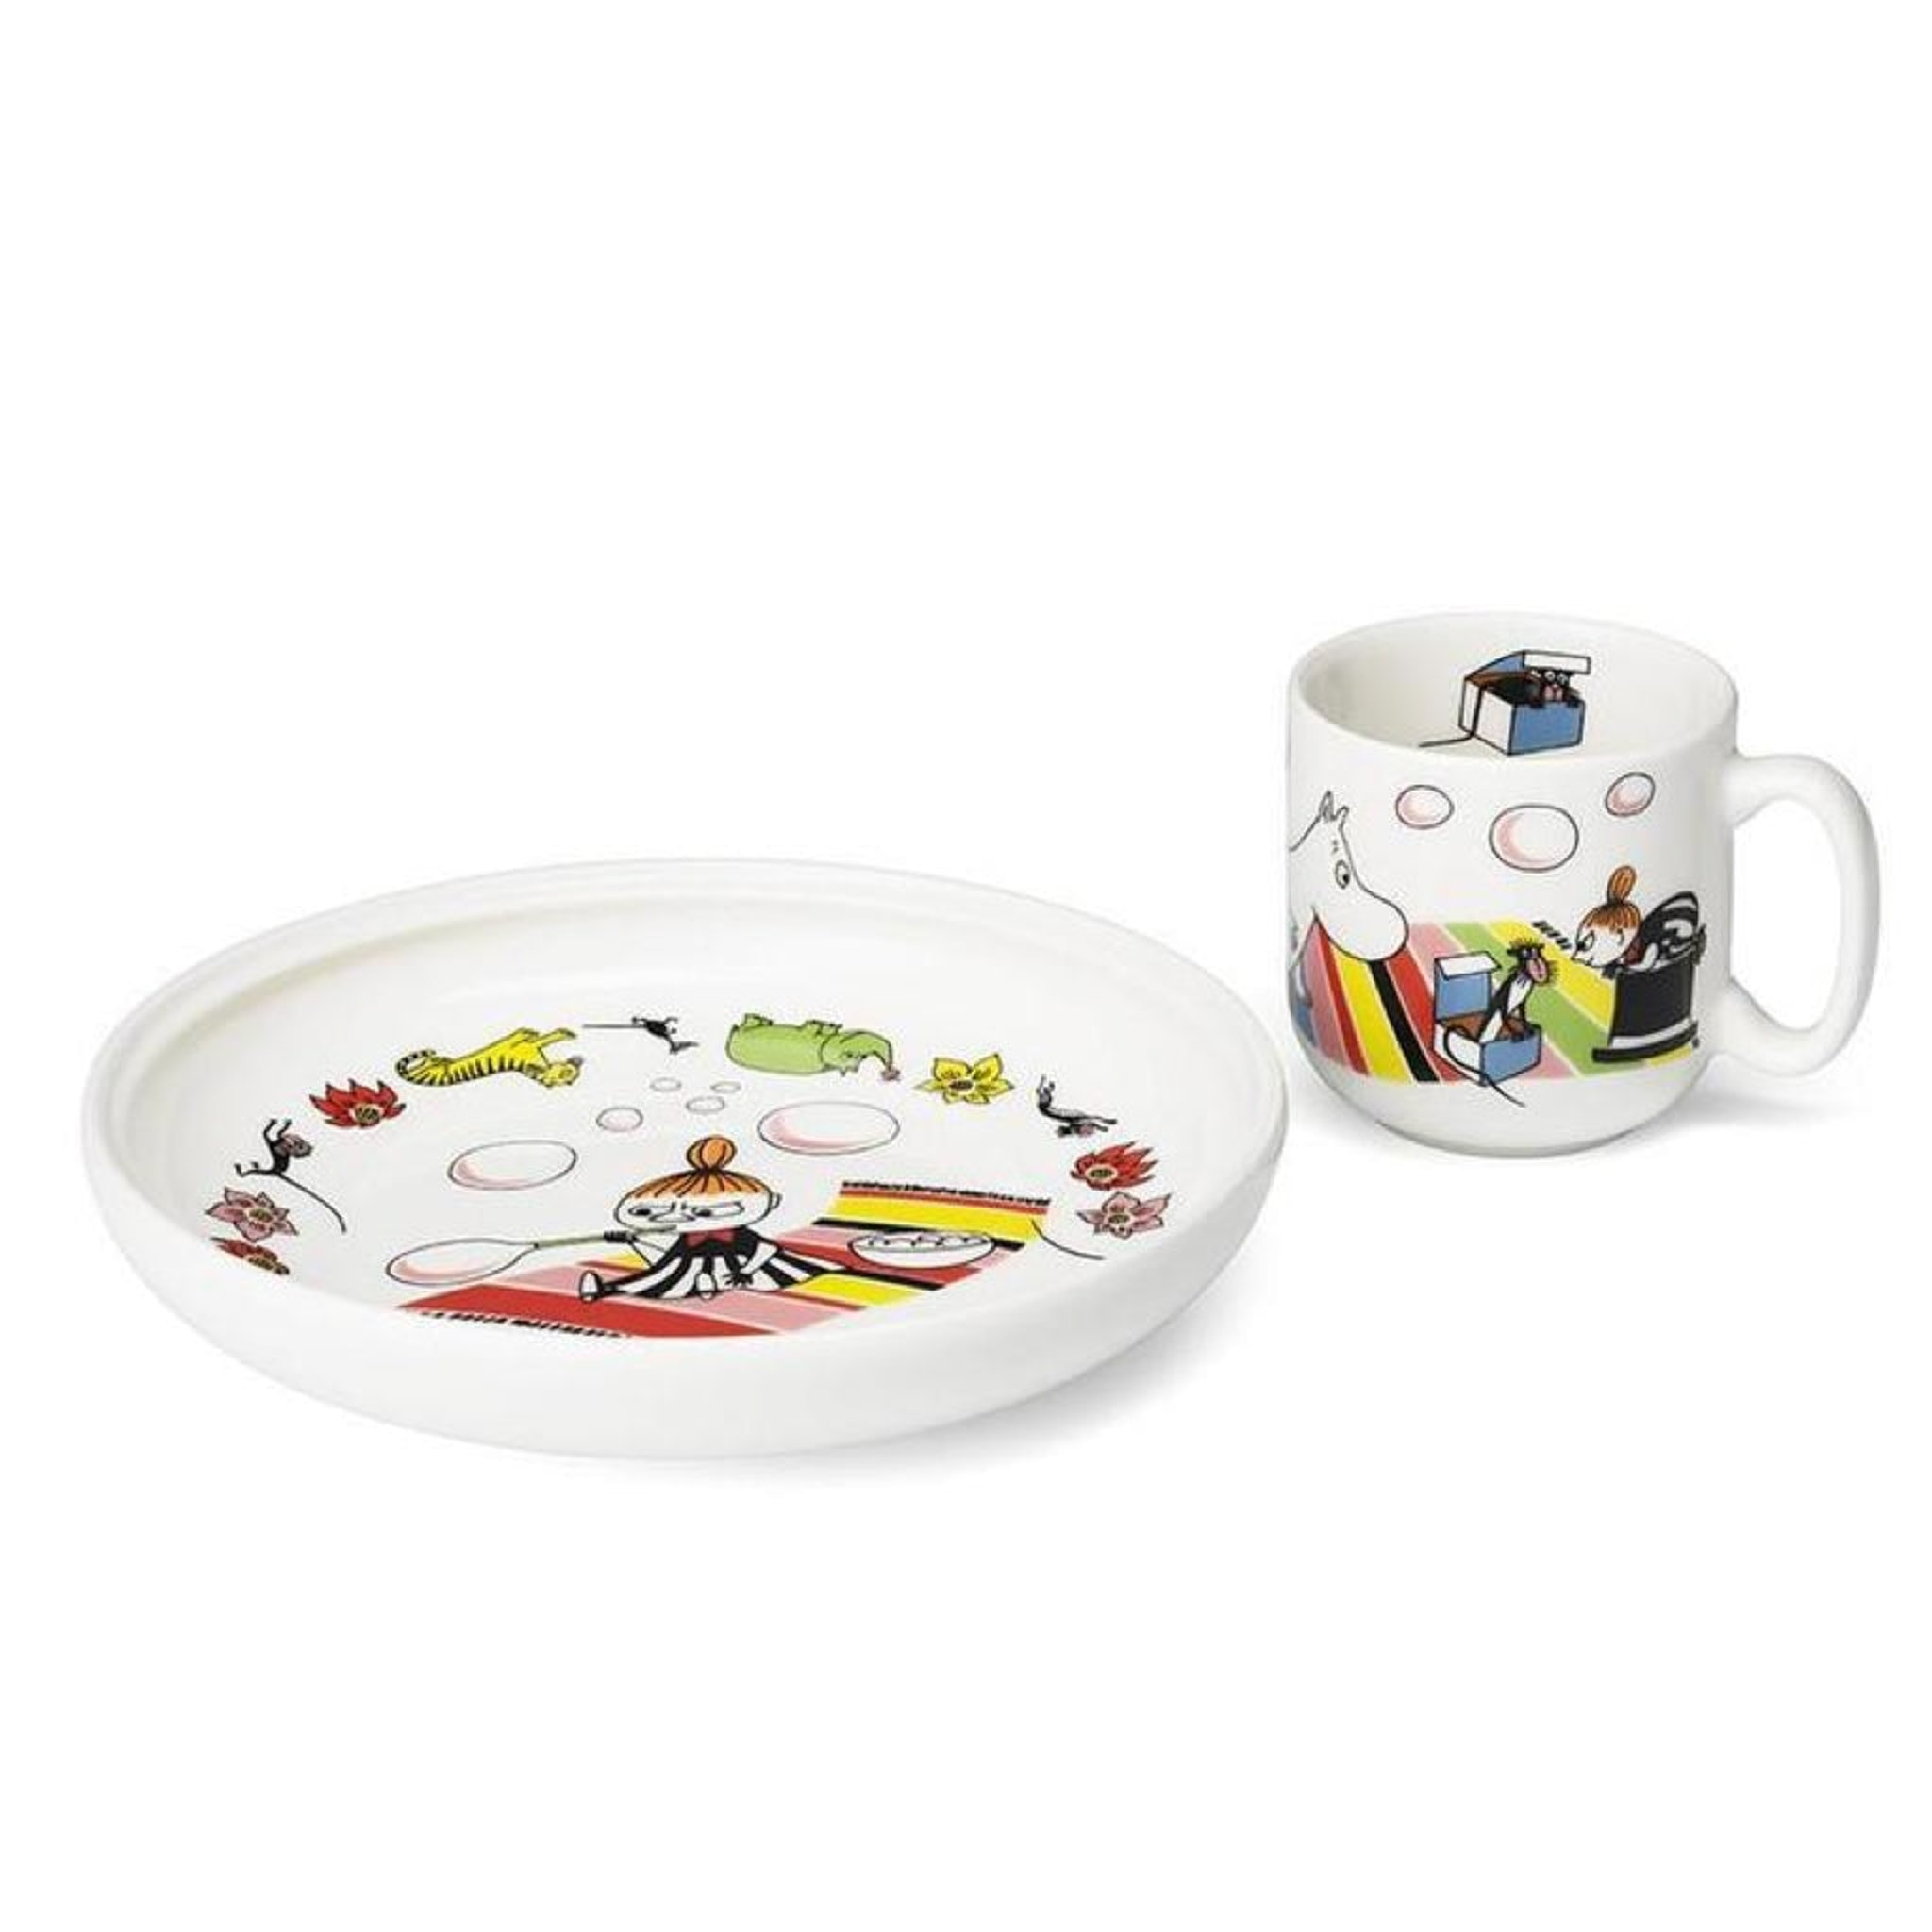 Moomin Children's Set Little My by Arabia